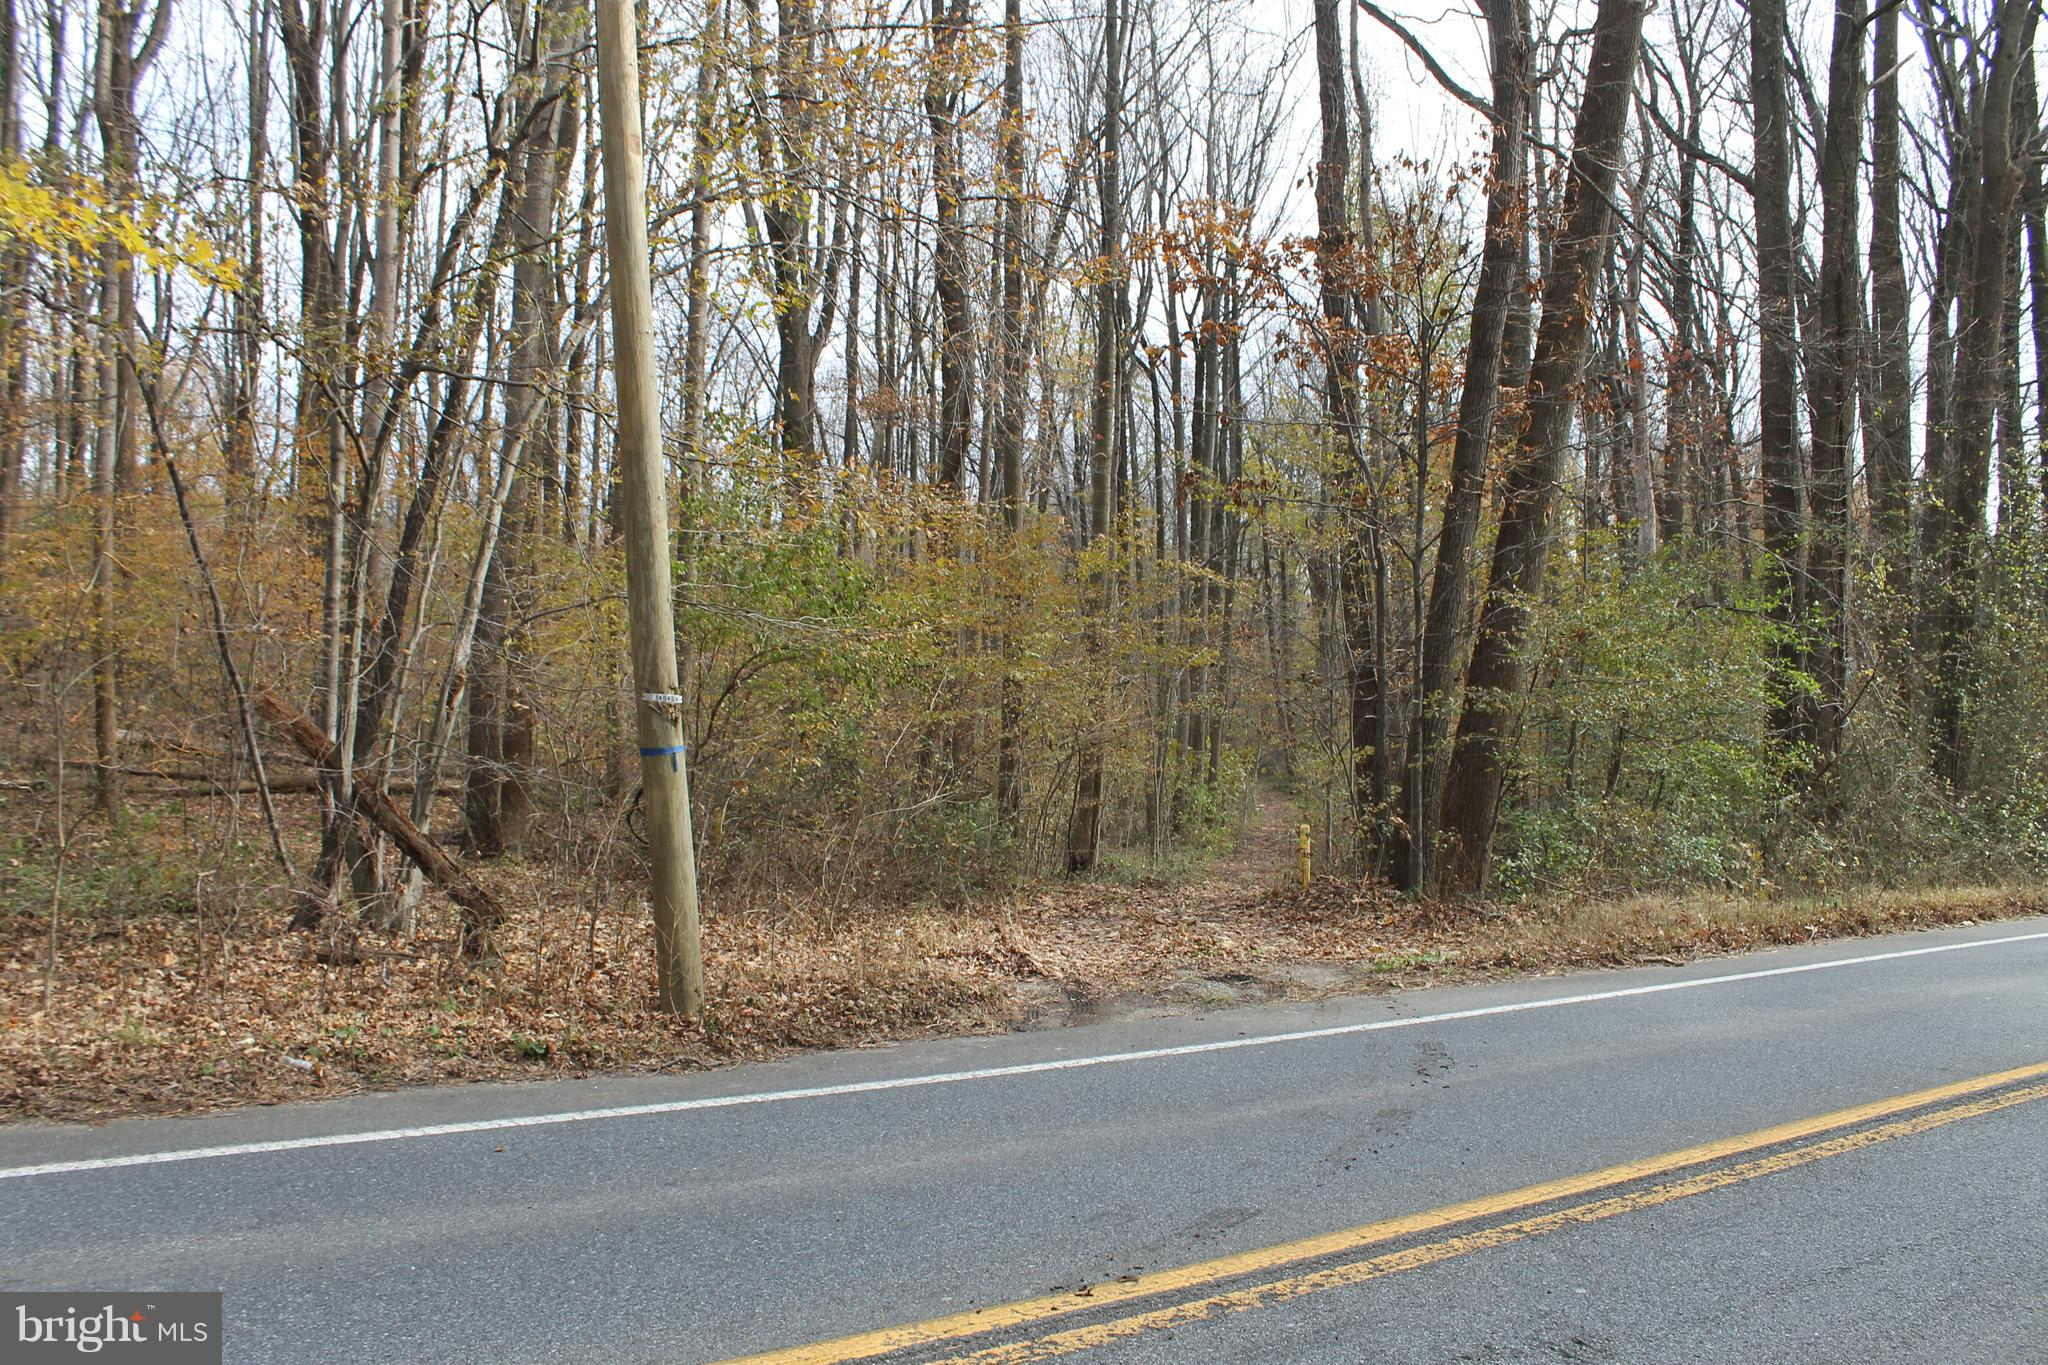 DAVIDSONVILLE ROAD, GAMBRILLS, MD 21054